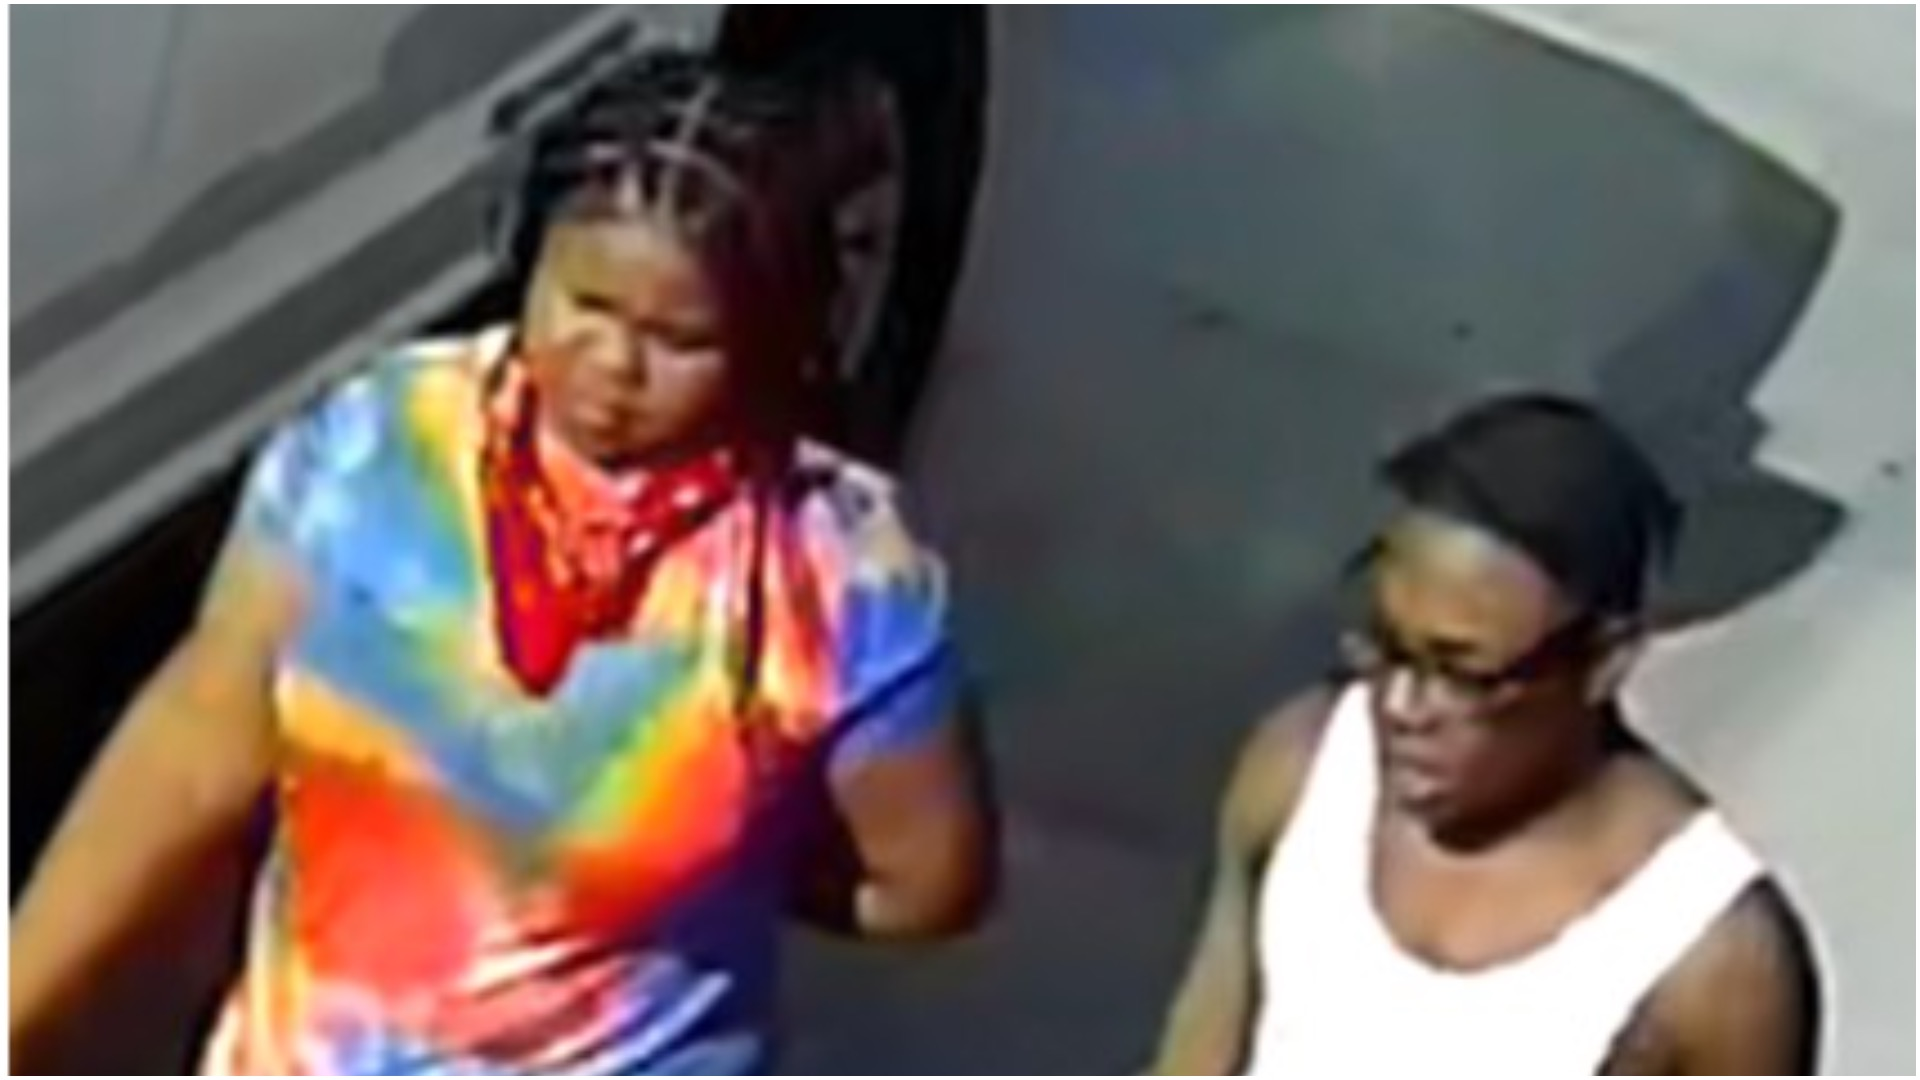 Duo breaks into Briarwood residence to drink and smoke: NYPD